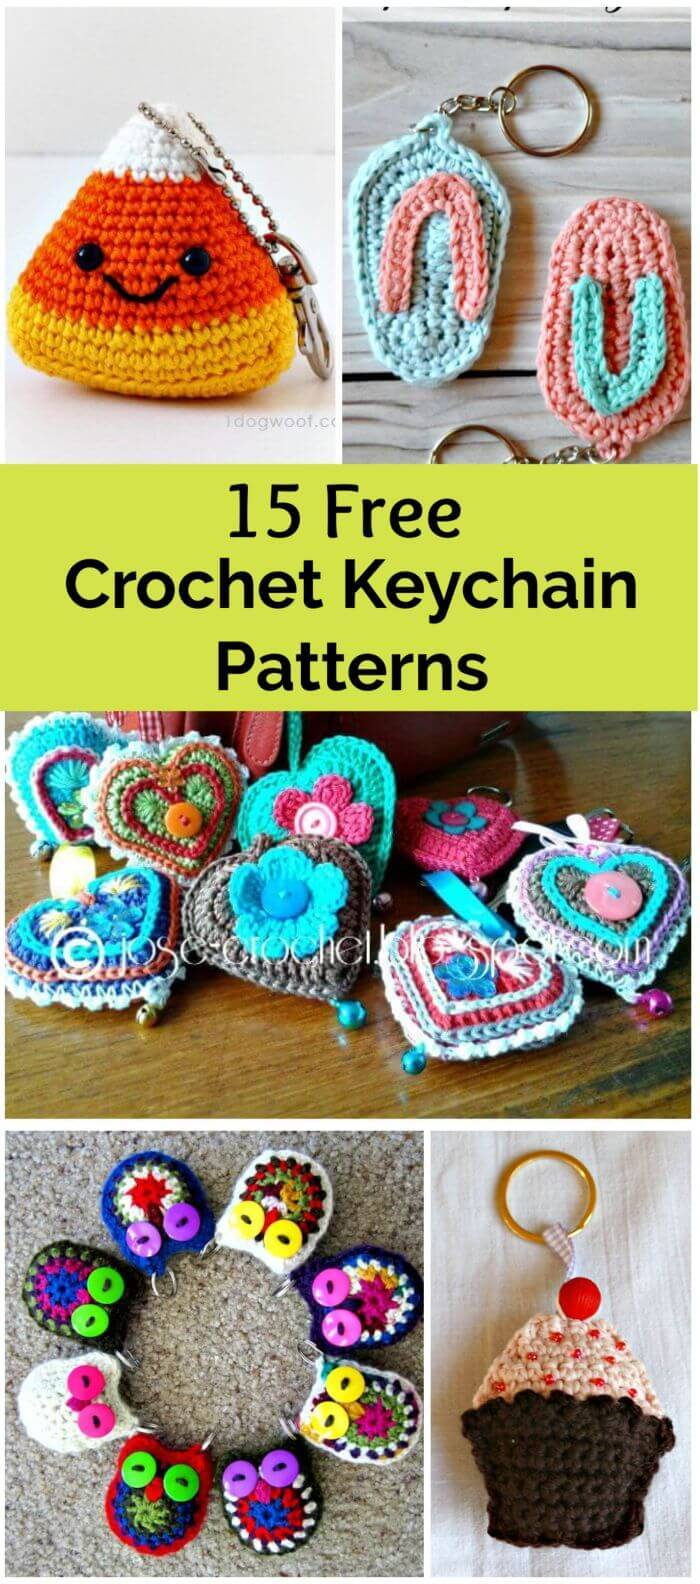 Crochet Keychain – 15 Free Crochet Patterns, DIY Crafts, Free Keychain Patterns, Crochet Keychains